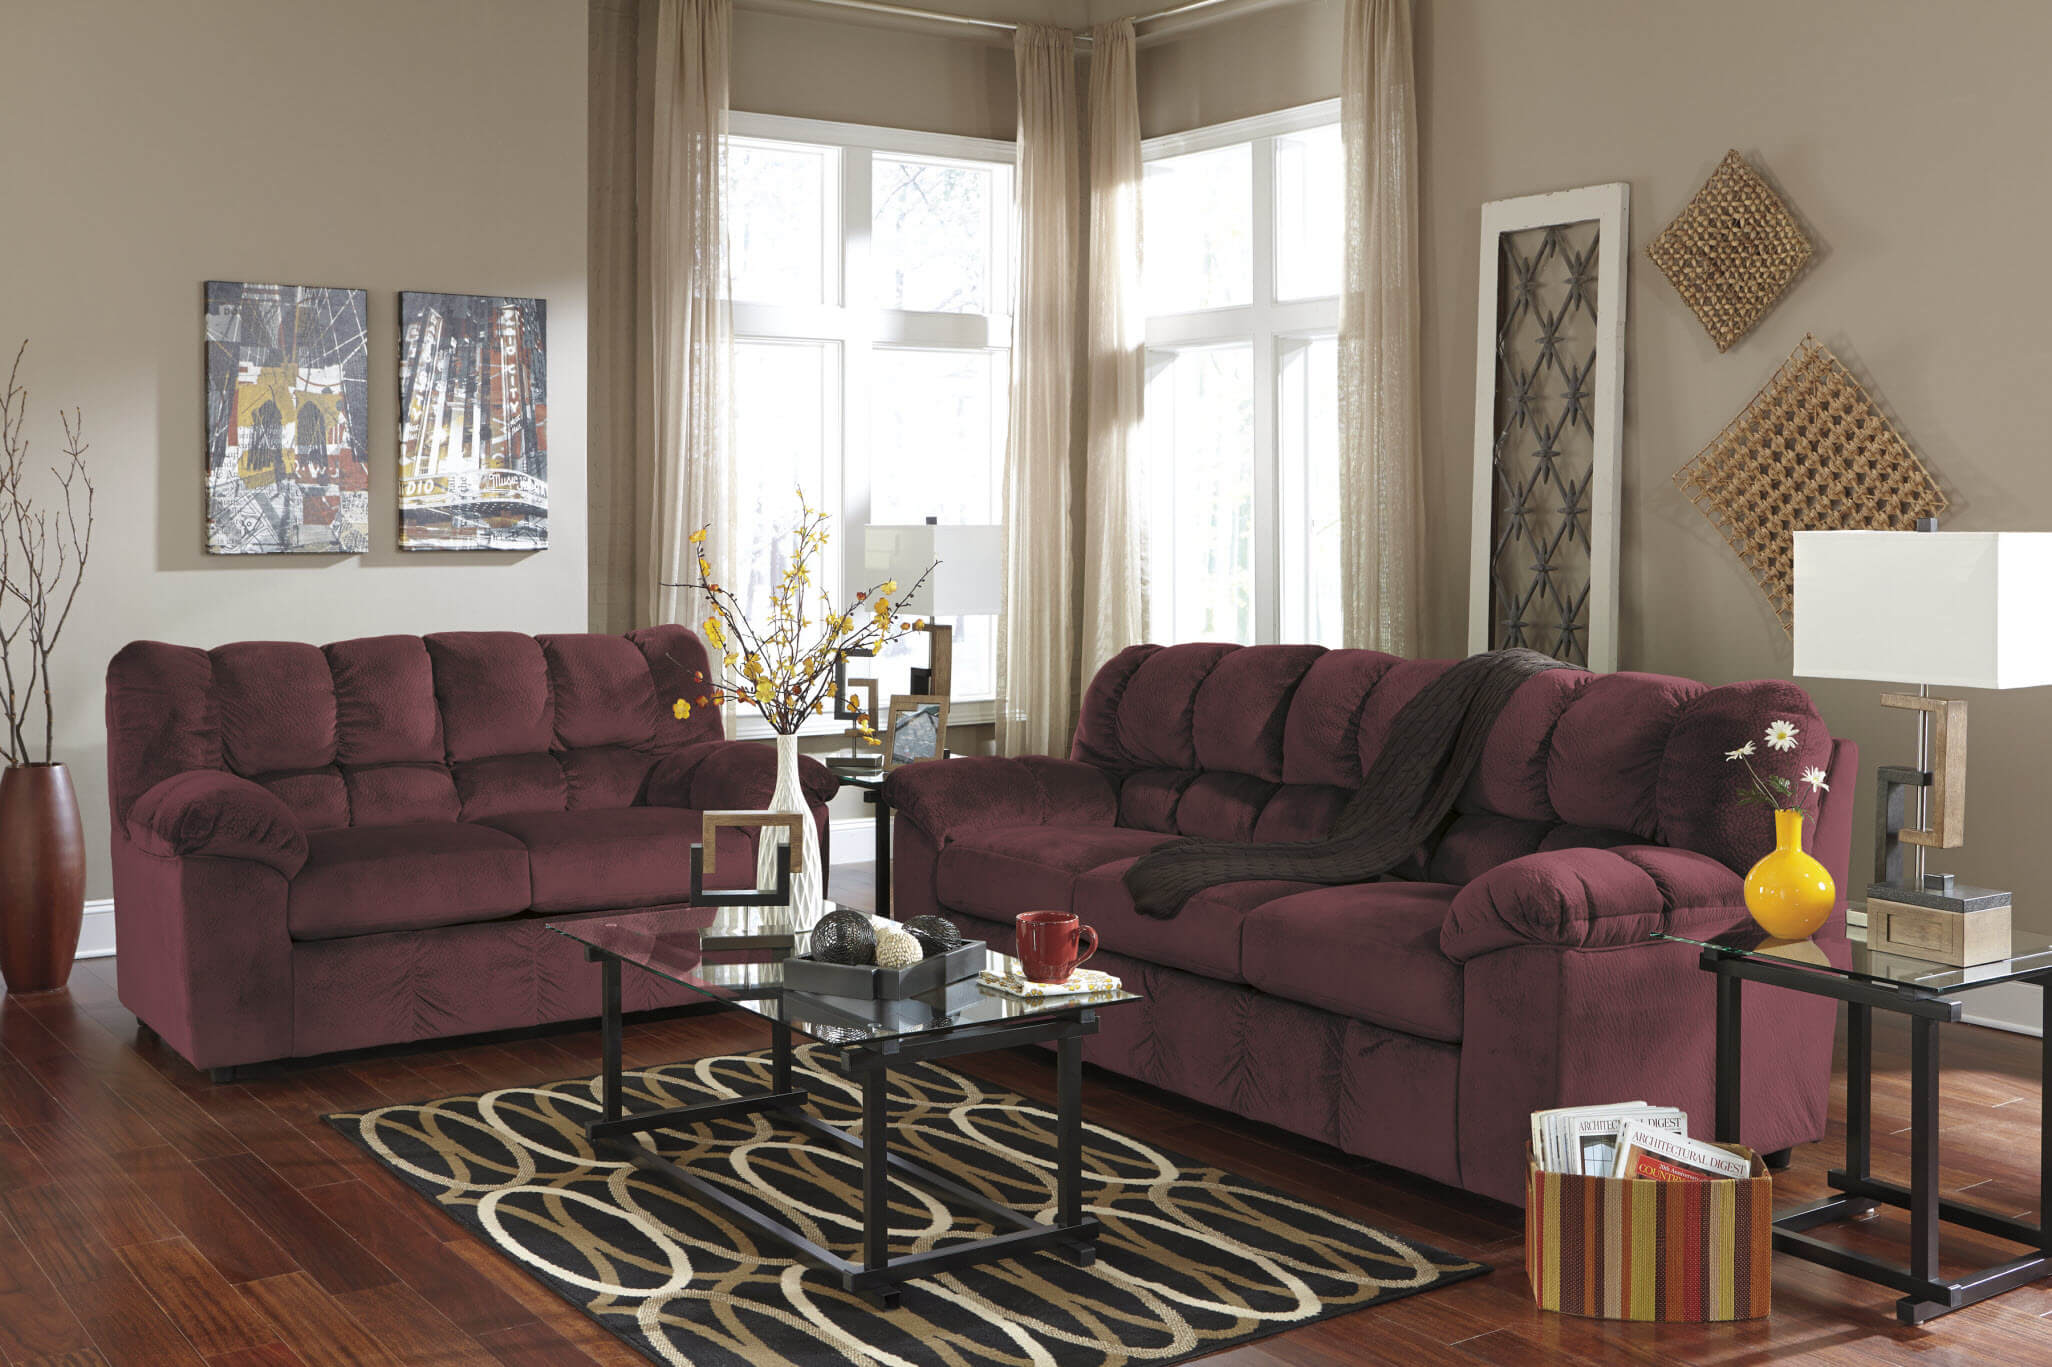 decorating sofa with living furniture decor colors room burgundy ideas